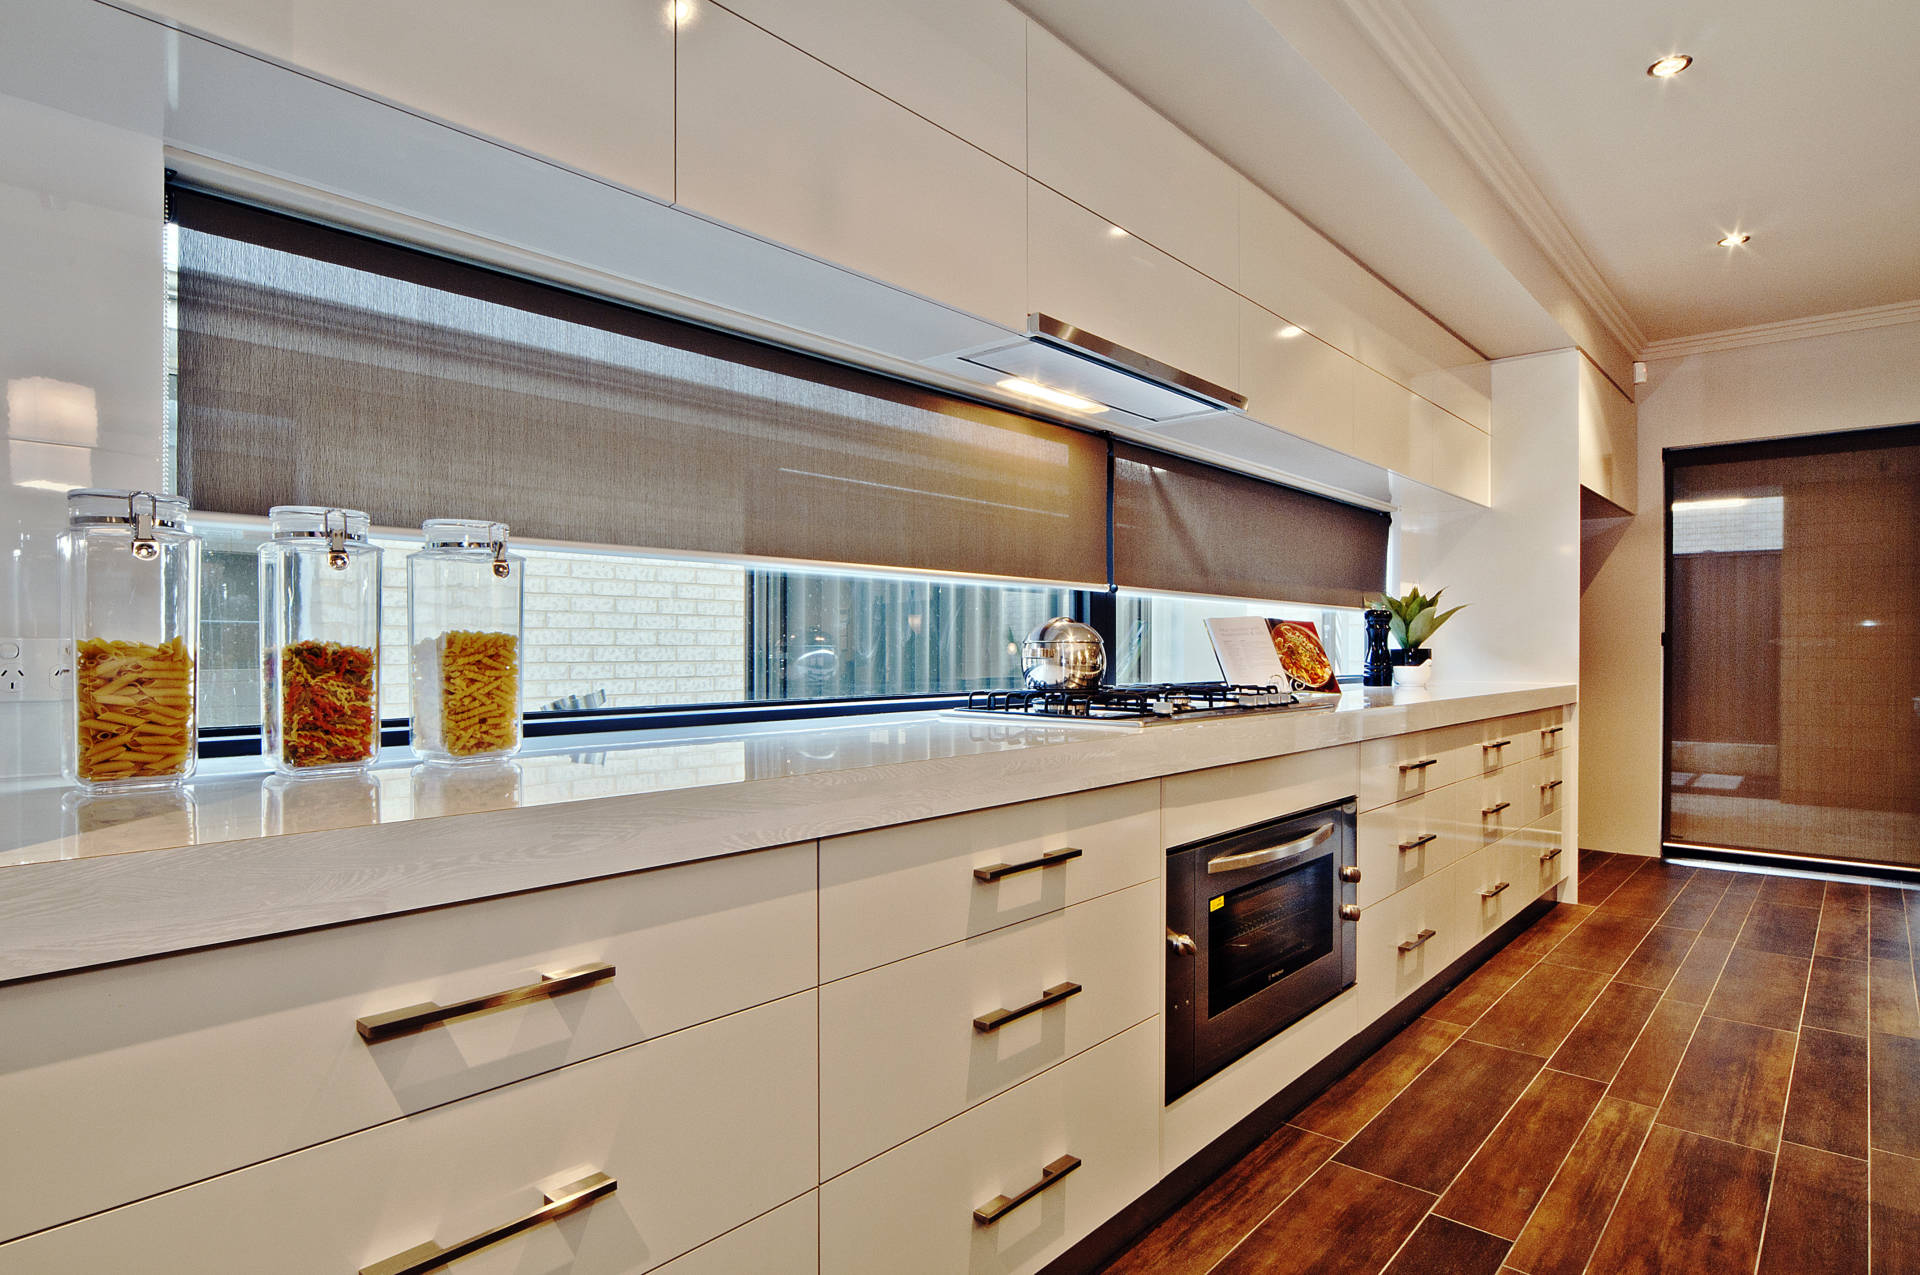 Modern kitchen interior with white cabinets, wooden tiled floor gas cooker and elongated window